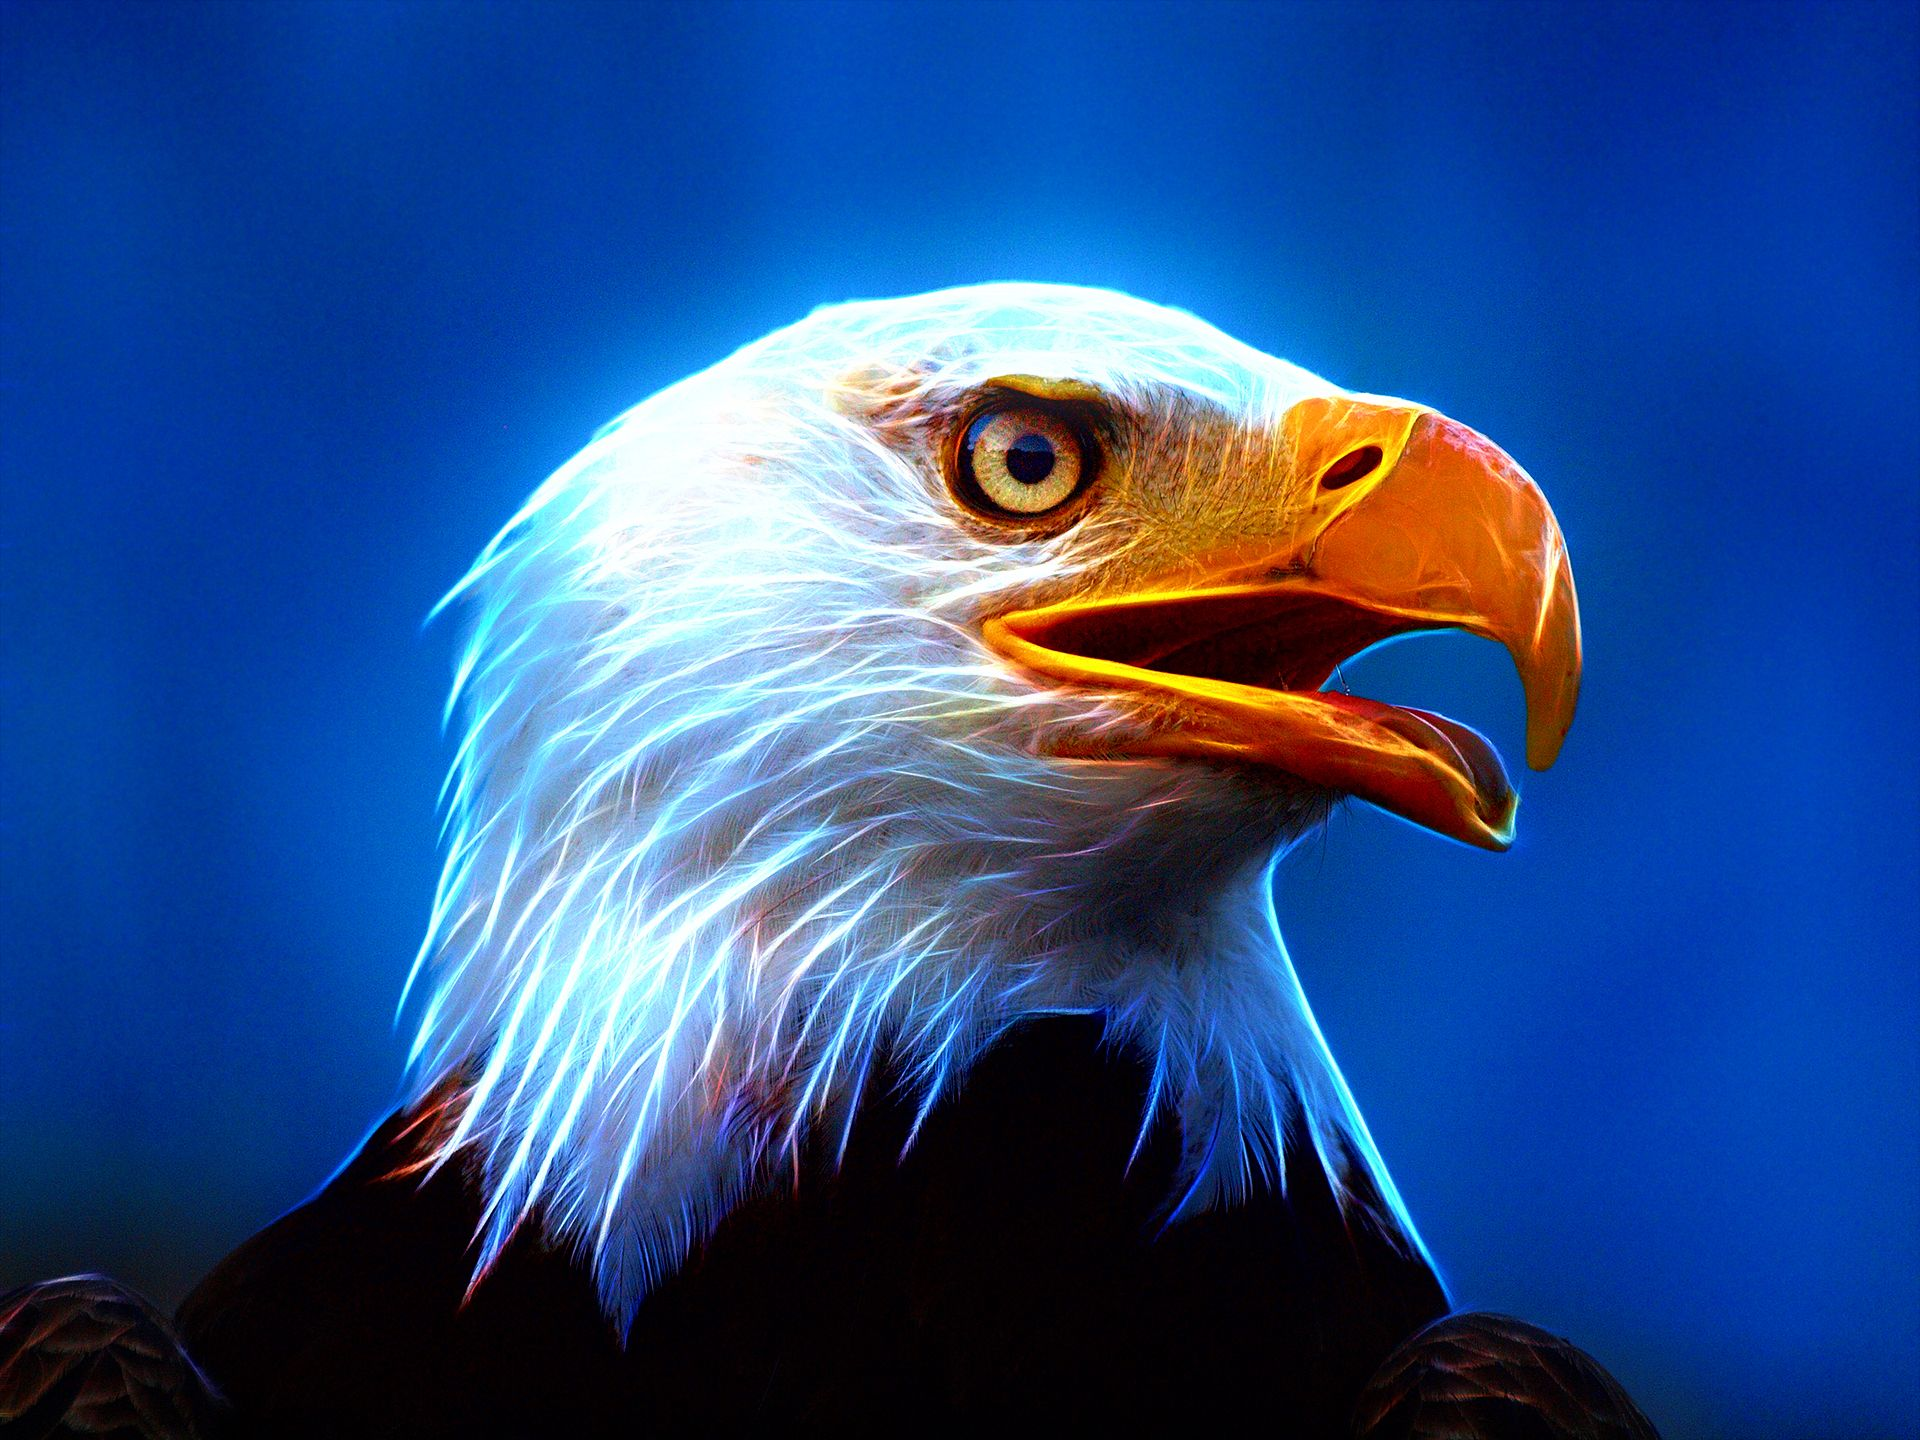 Eagle Wallpapers, Download Eagle HD Wallpapers for Free